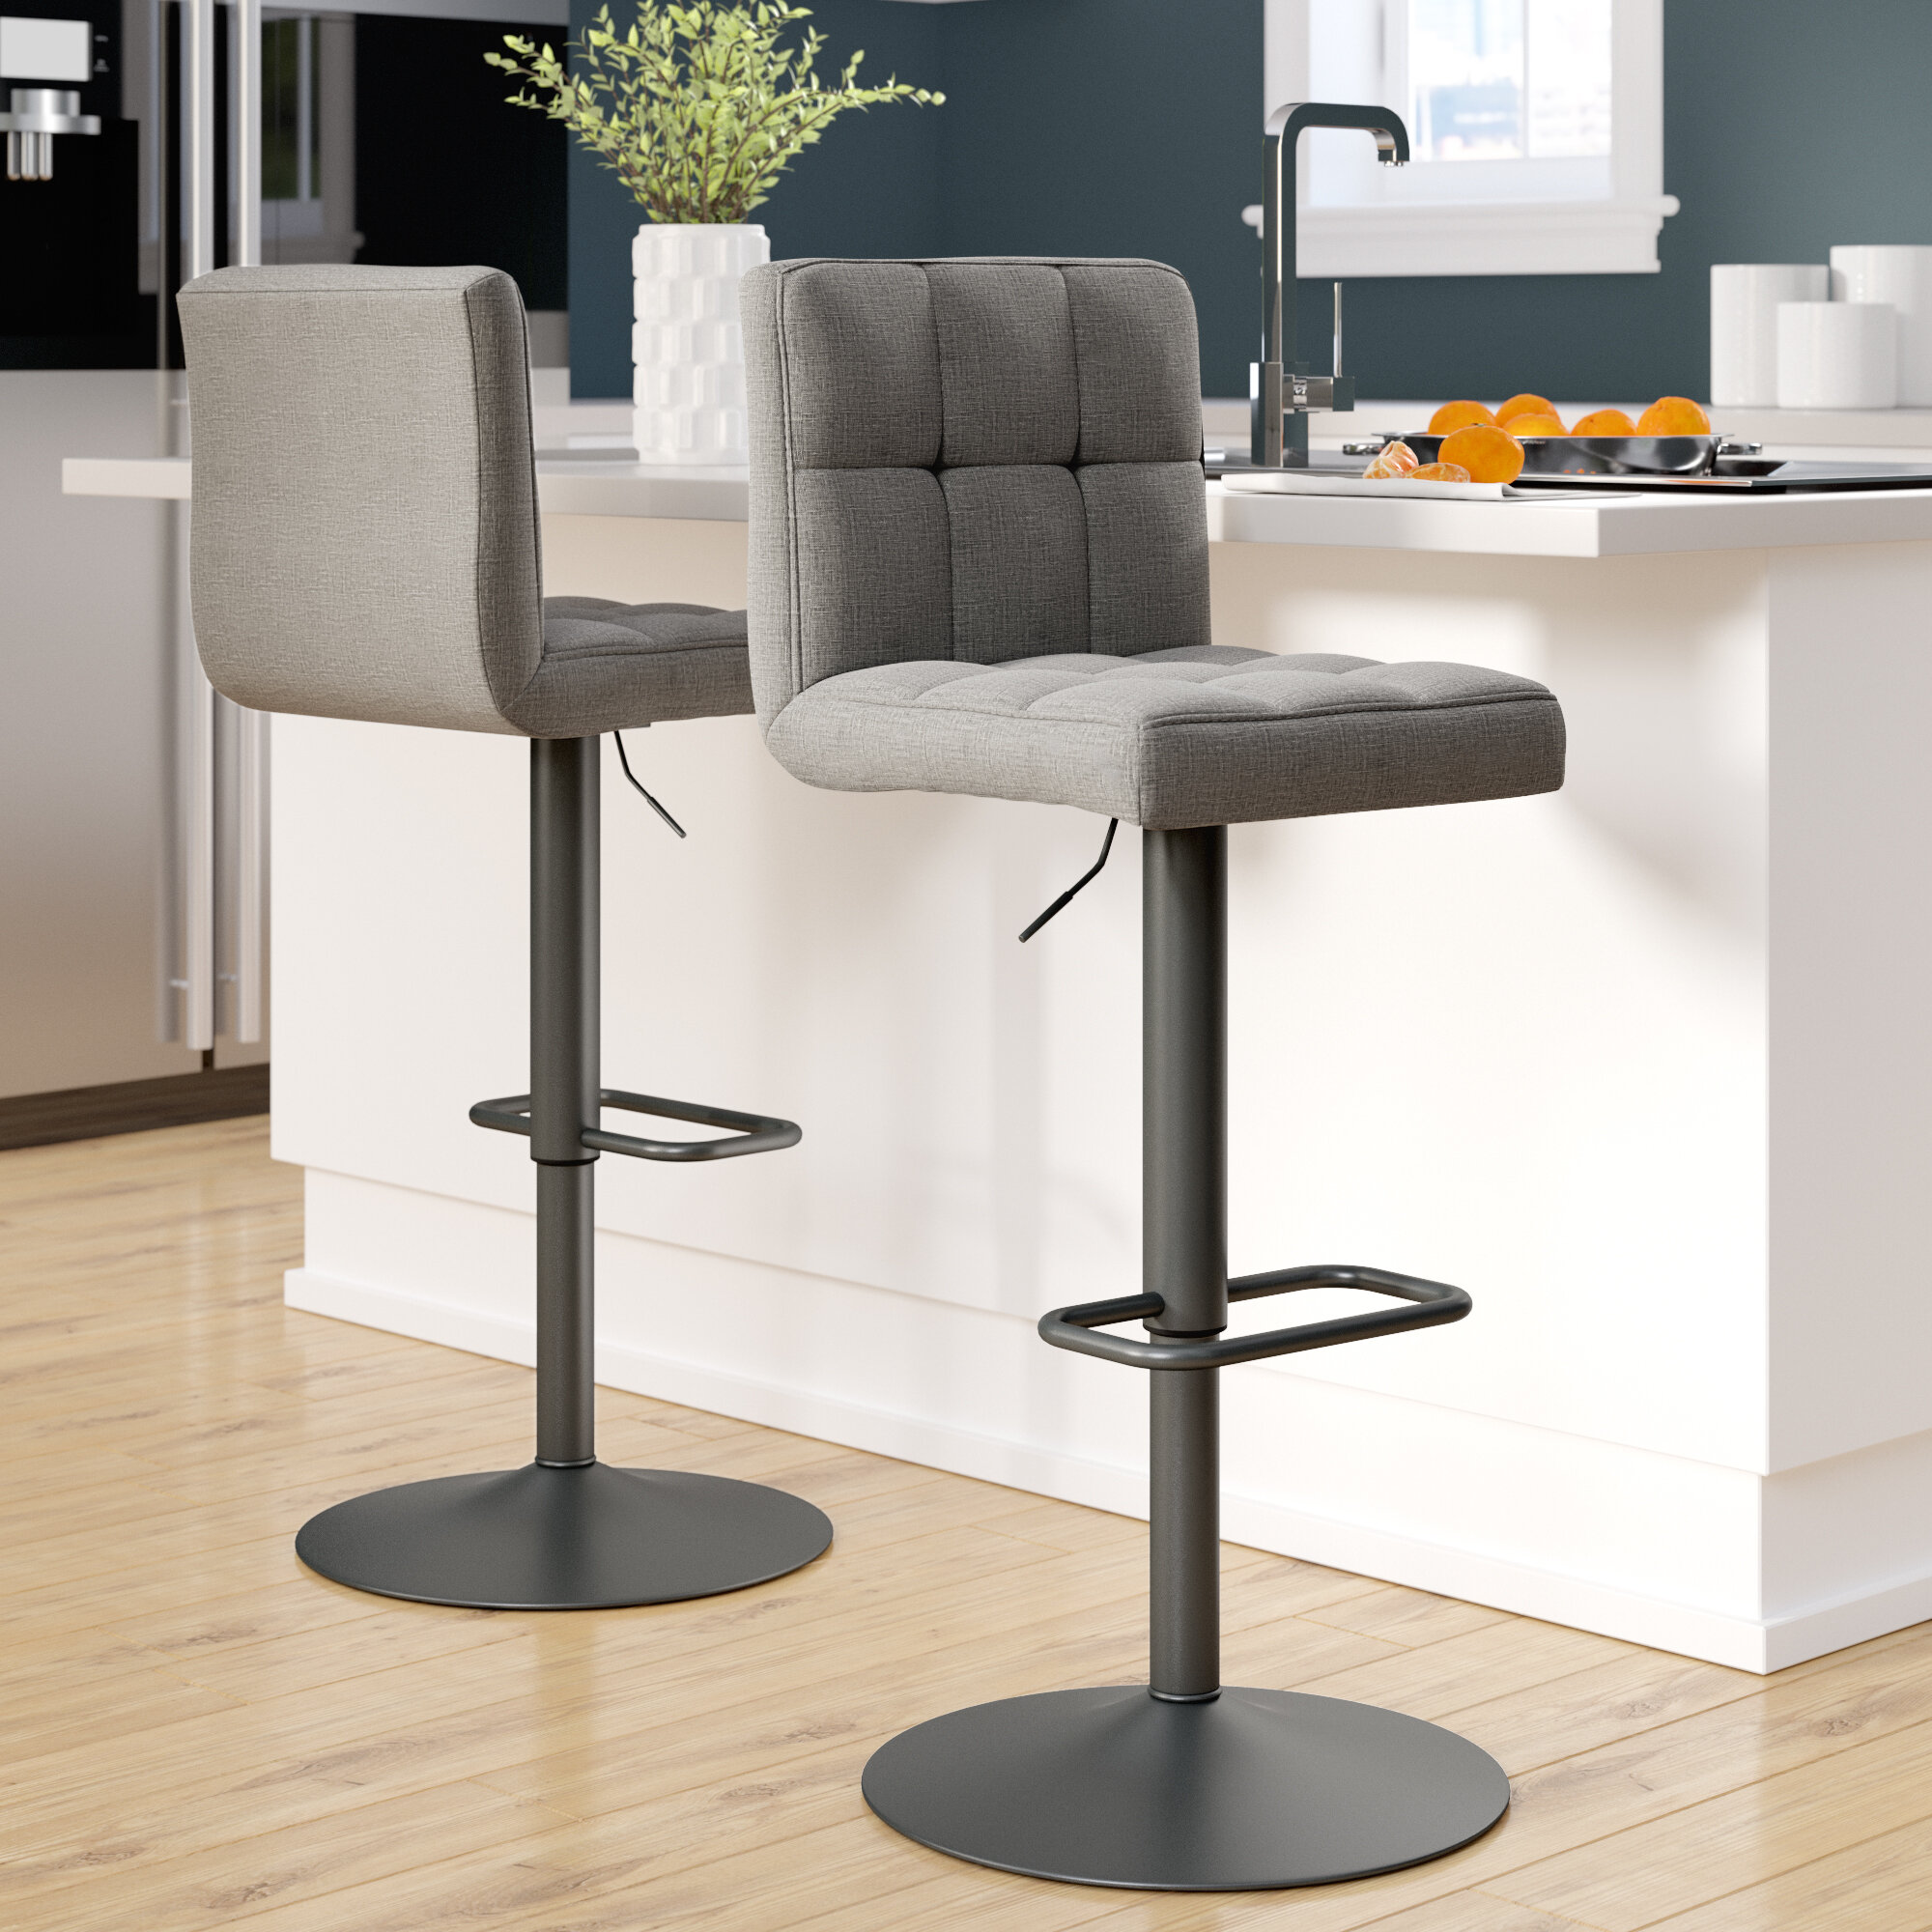 Awesome Ebern Designs Faustina Adjustable Height Swivel Bar Stool Caraccident5 Cool Chair Designs And Ideas Caraccident5Info